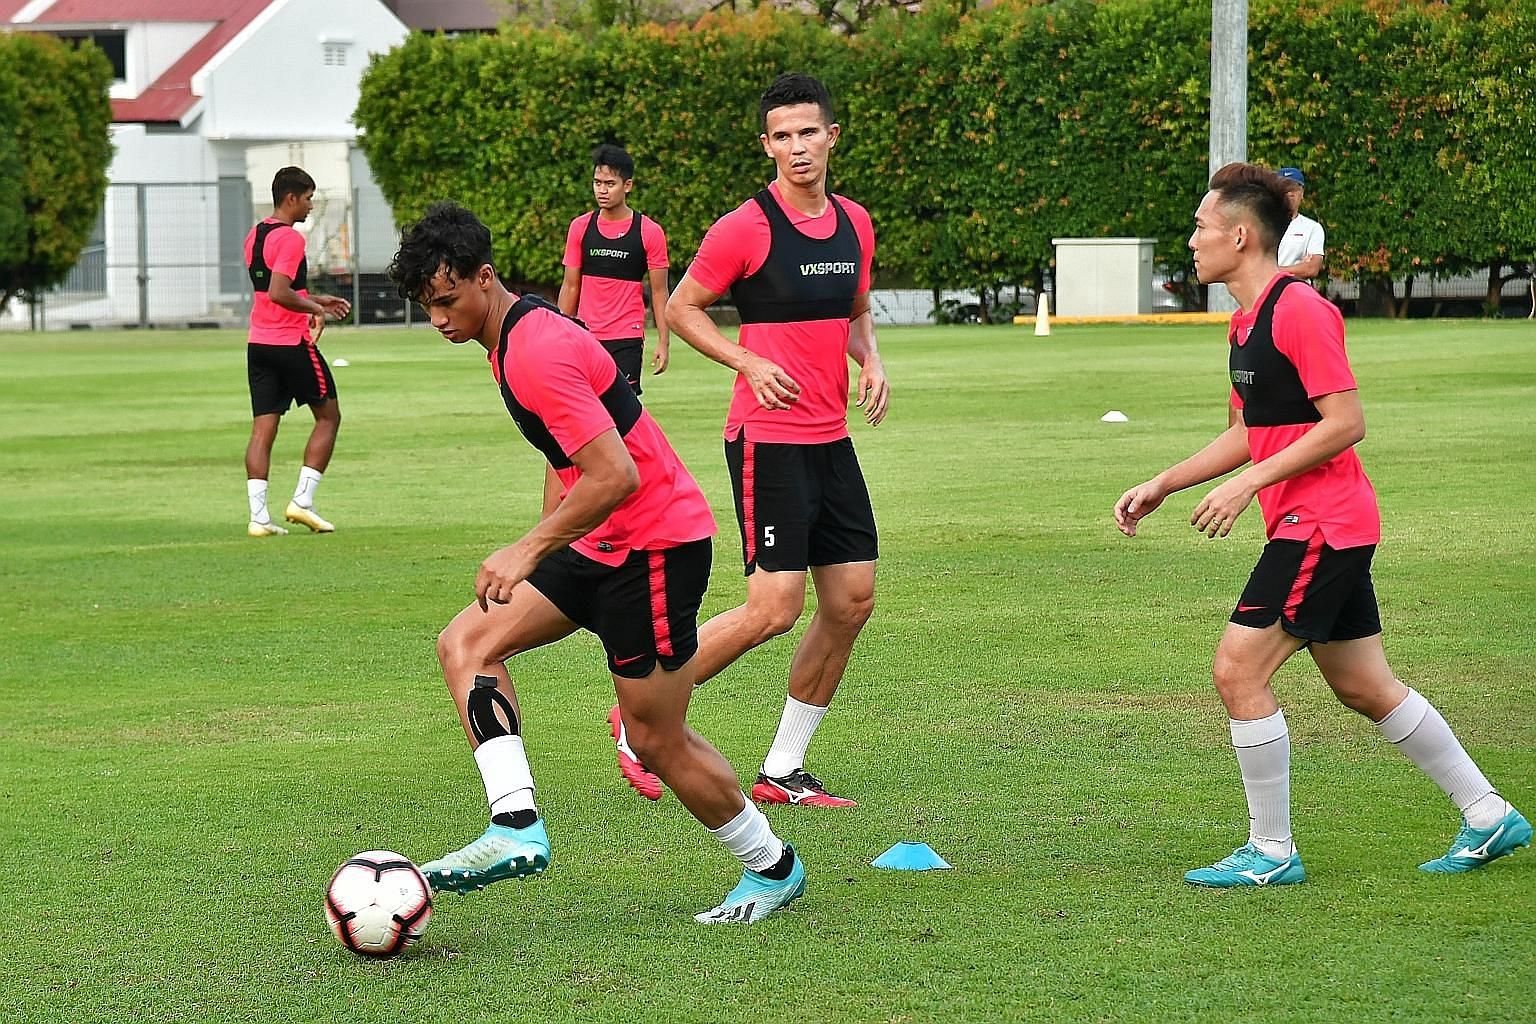 Ikhsan Fandi, watched by Baihakki Khaizan and Darren Teh, on the ball during Singapore's training session ahead of their game against Uzbekistan. ST PHOTO: DESMOND WEE